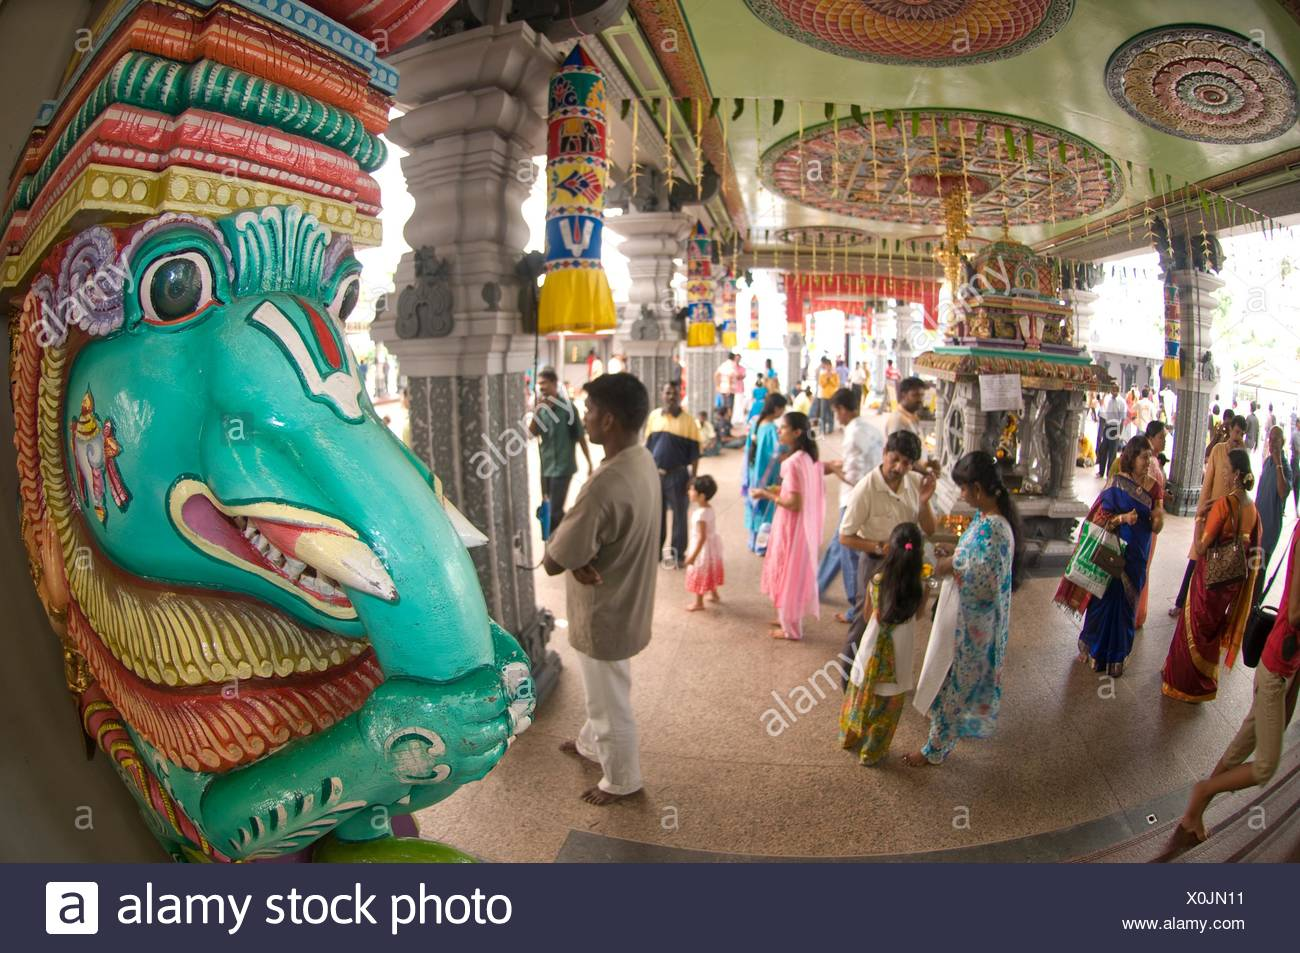 Devotees and gaudy elephant painted column during Deepavali ceremony, Sri Veeramakaliamman Temple, Little India, Singapore. - Stock Image